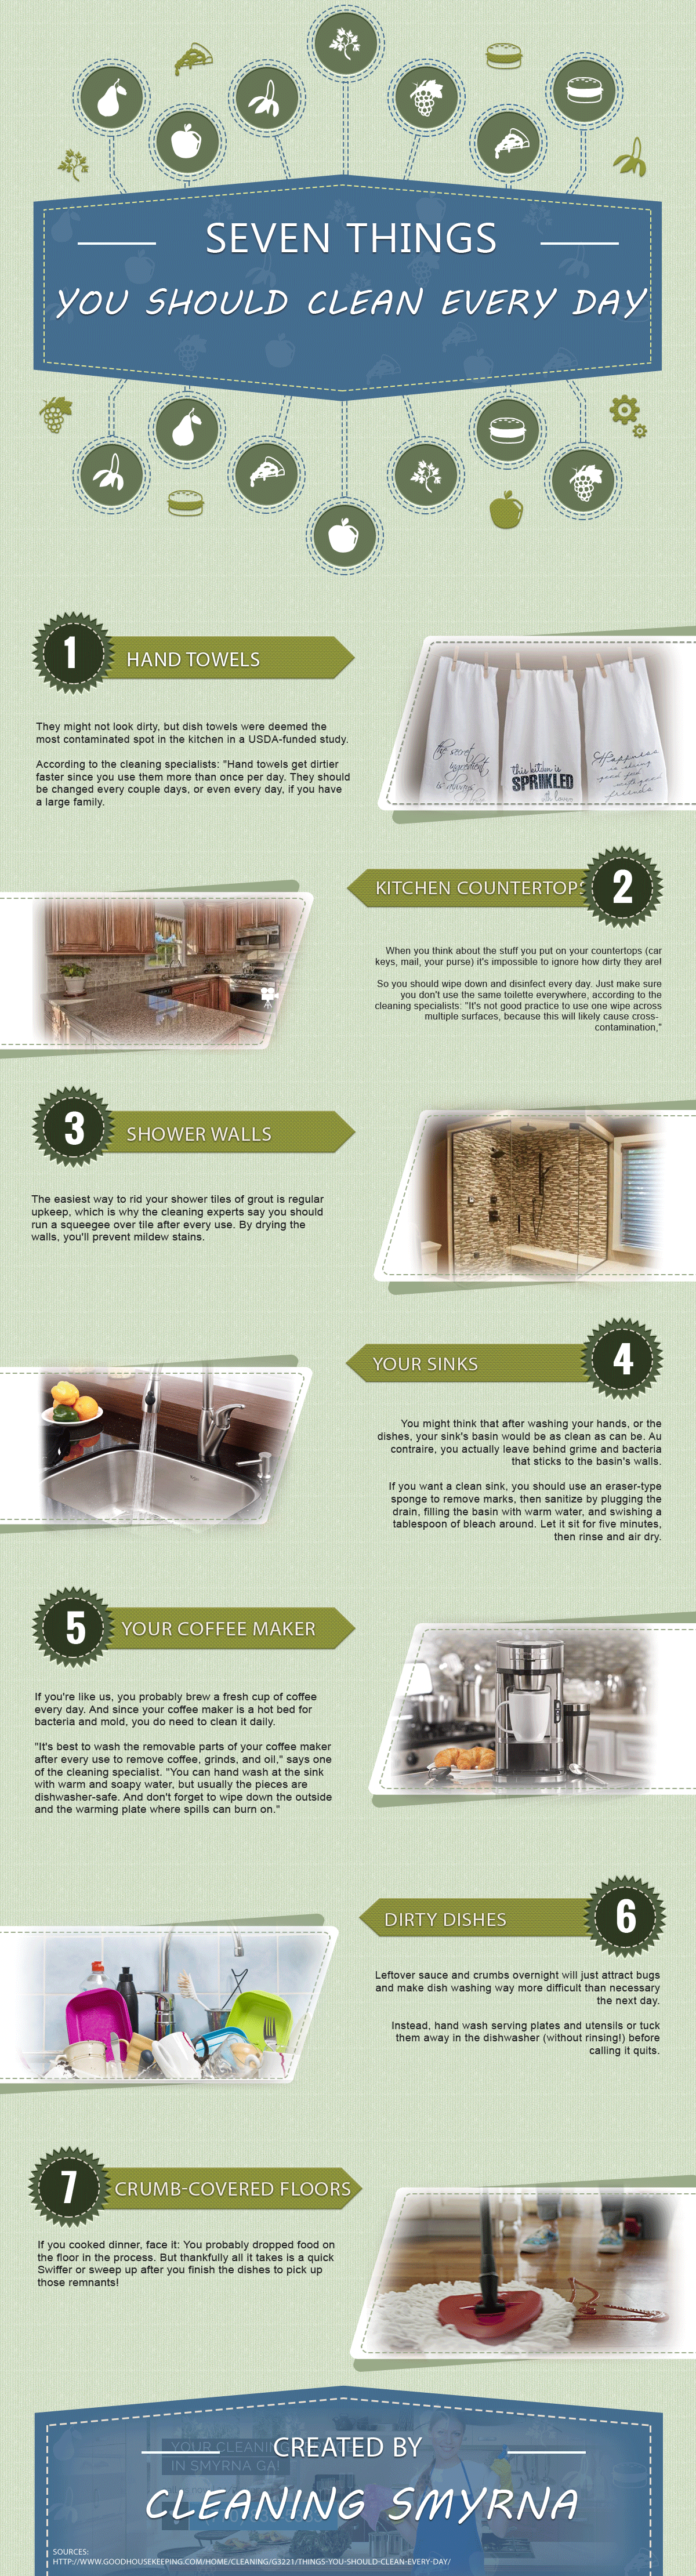 7-Things-You-Should-Clean